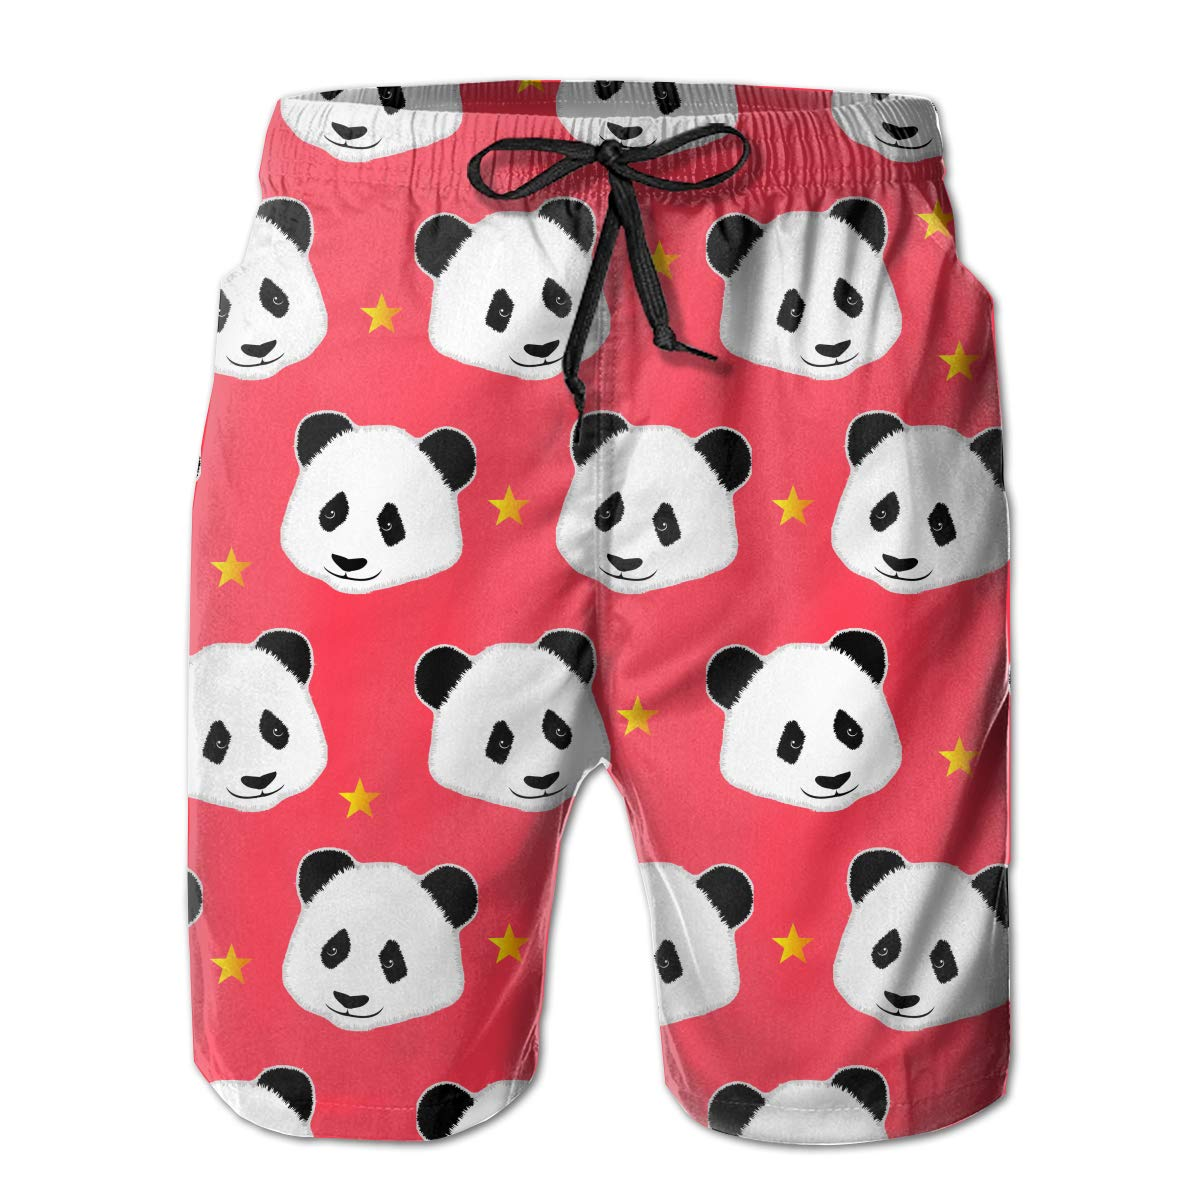 Mikonsu Red Panda Head Mens Swim Trunks Quick Dry Bathing Suits Beach Holiday Party Board Shorts